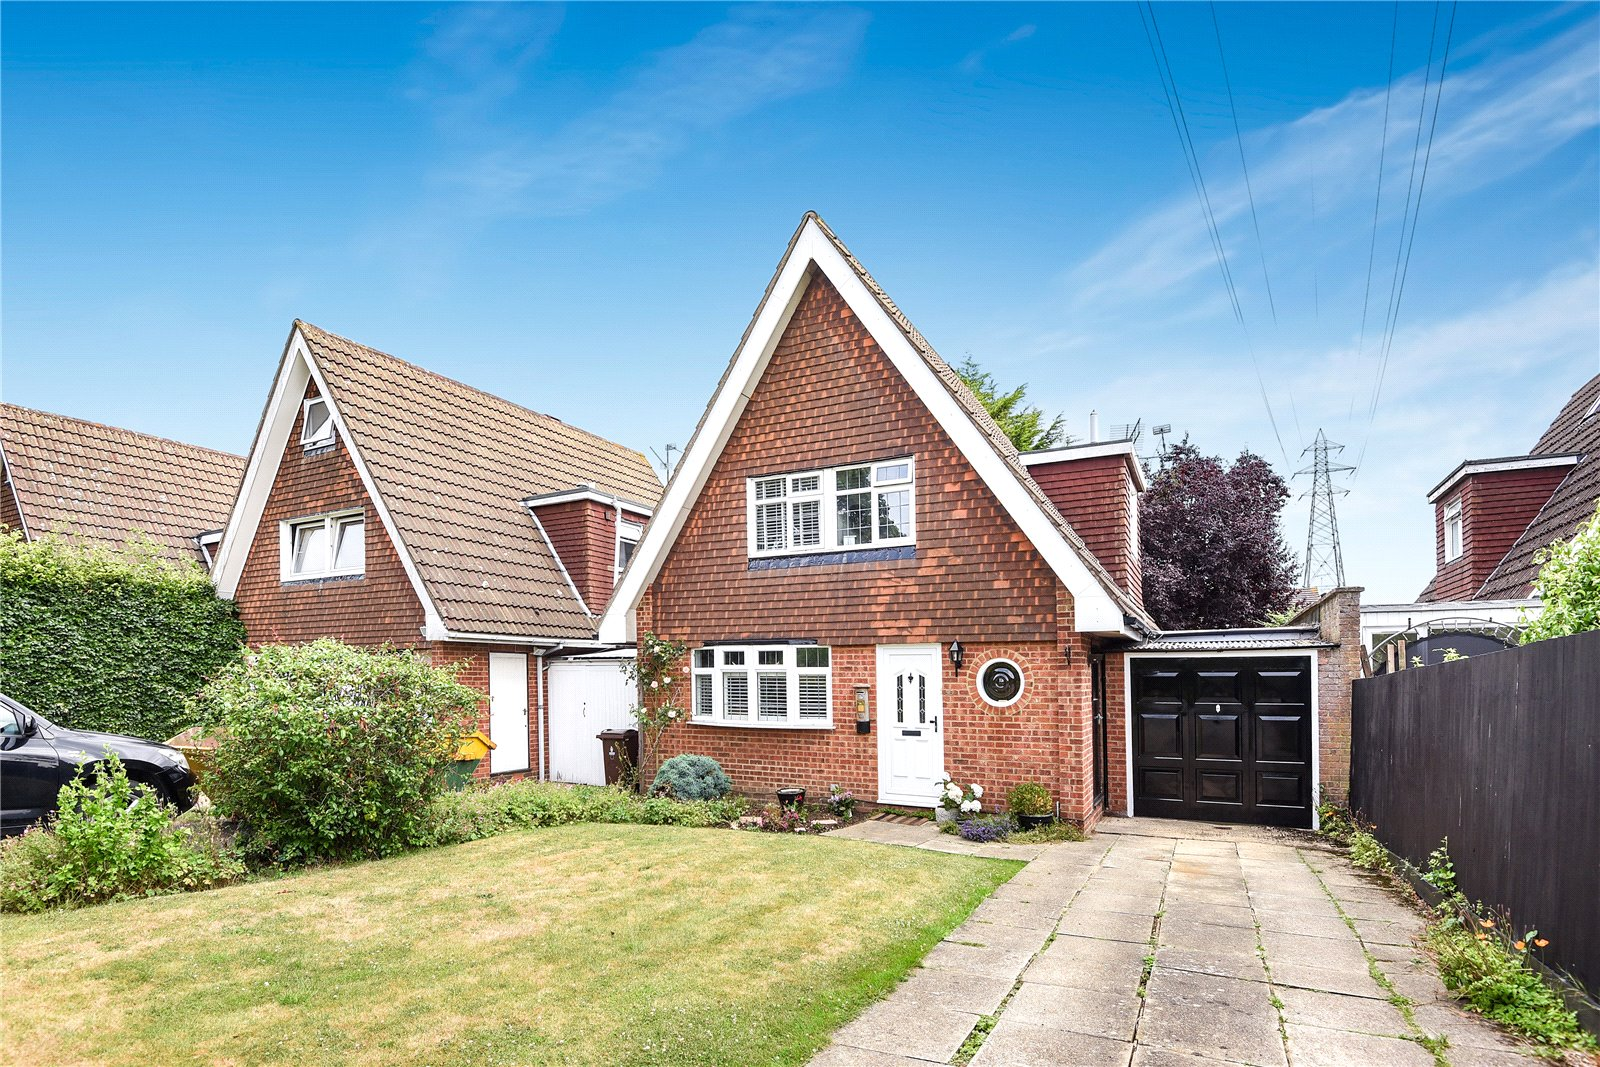 3 Bedrooms Link Detached House for sale in Blagrove Lane, Wokingham, Berkshire, RG41